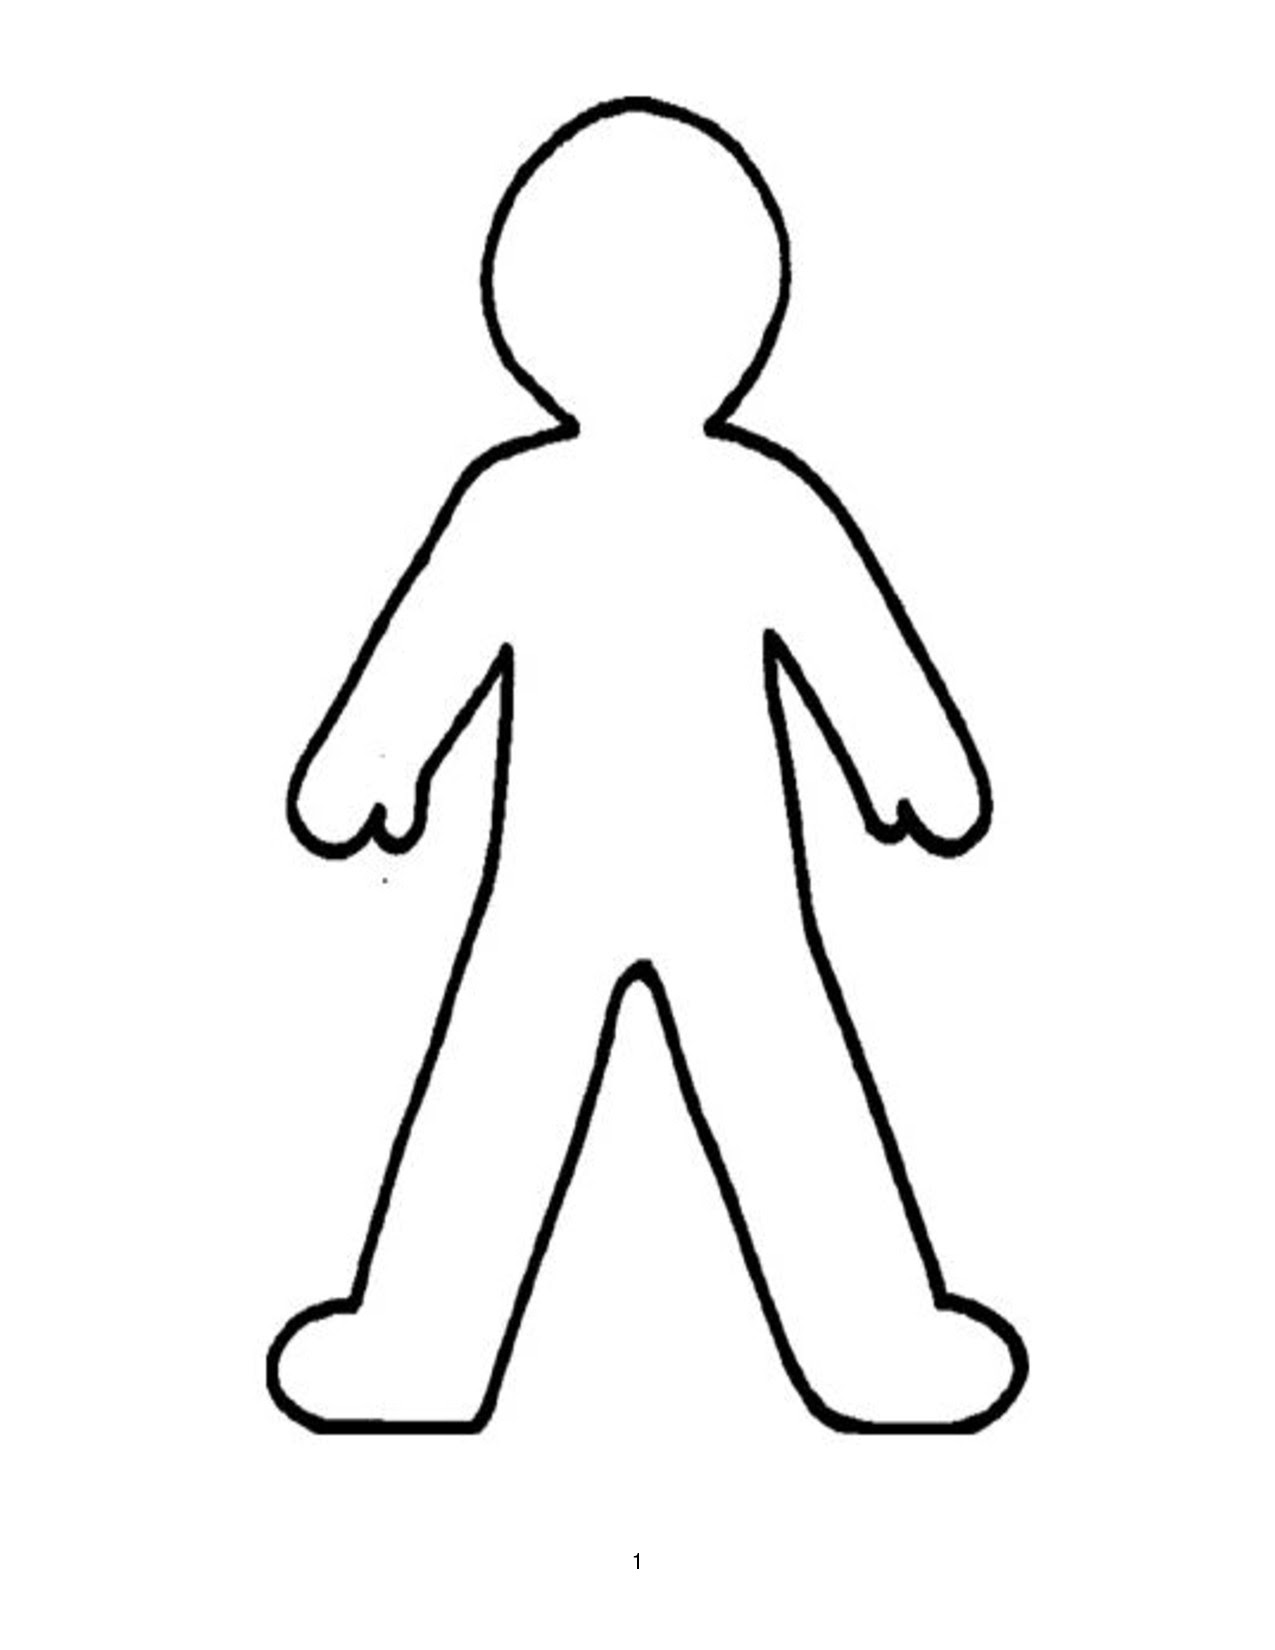 Person Coloring Page : person, coloring, Human, Coloring, Pages, Download, Print